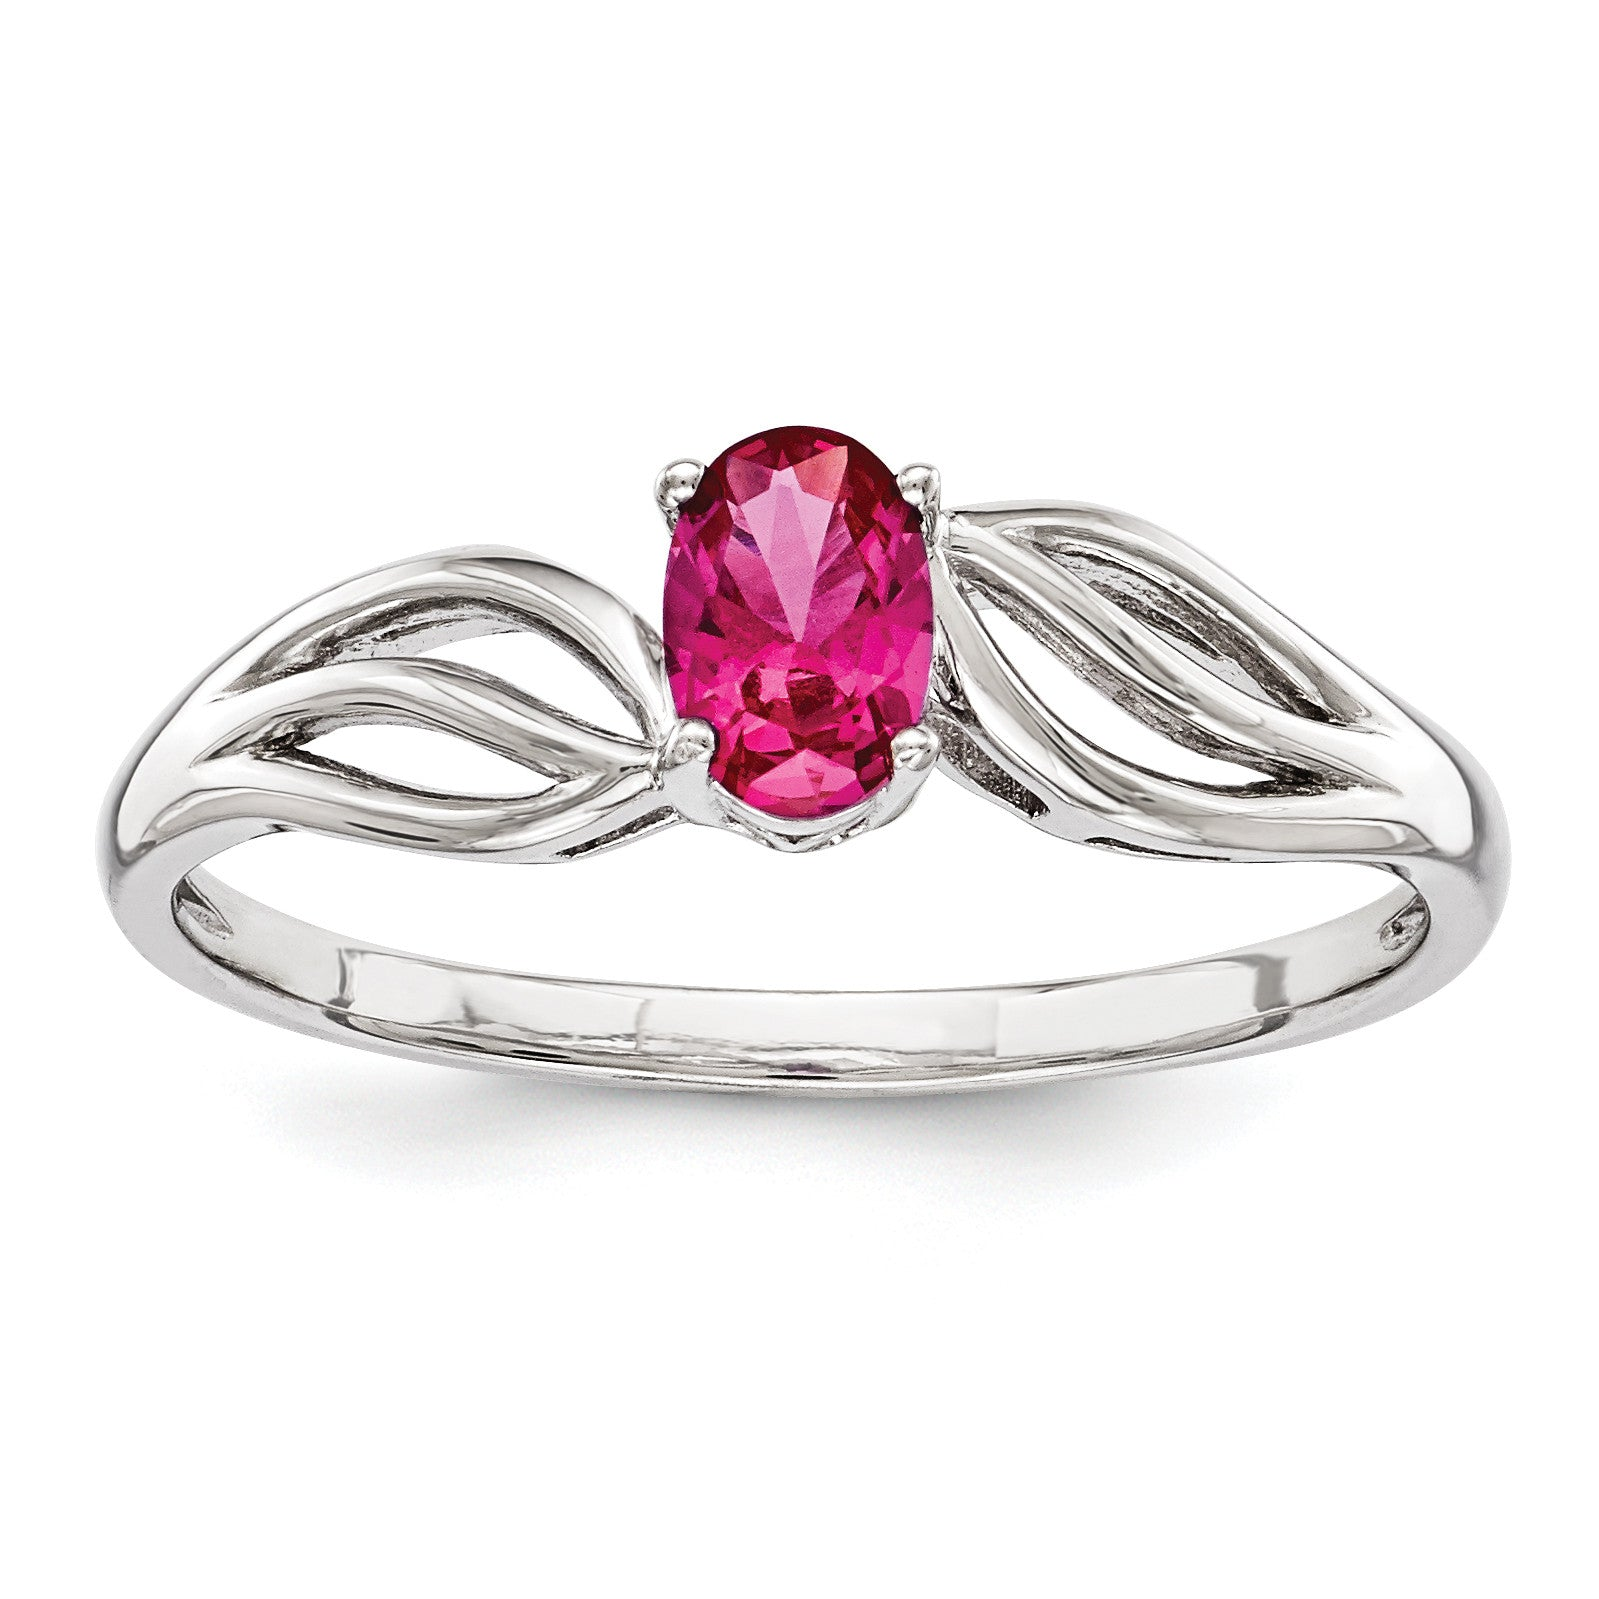 Sterling Silver Rhodium-plated Created Ruby Ring QBR17JUL - shirin-diamonds